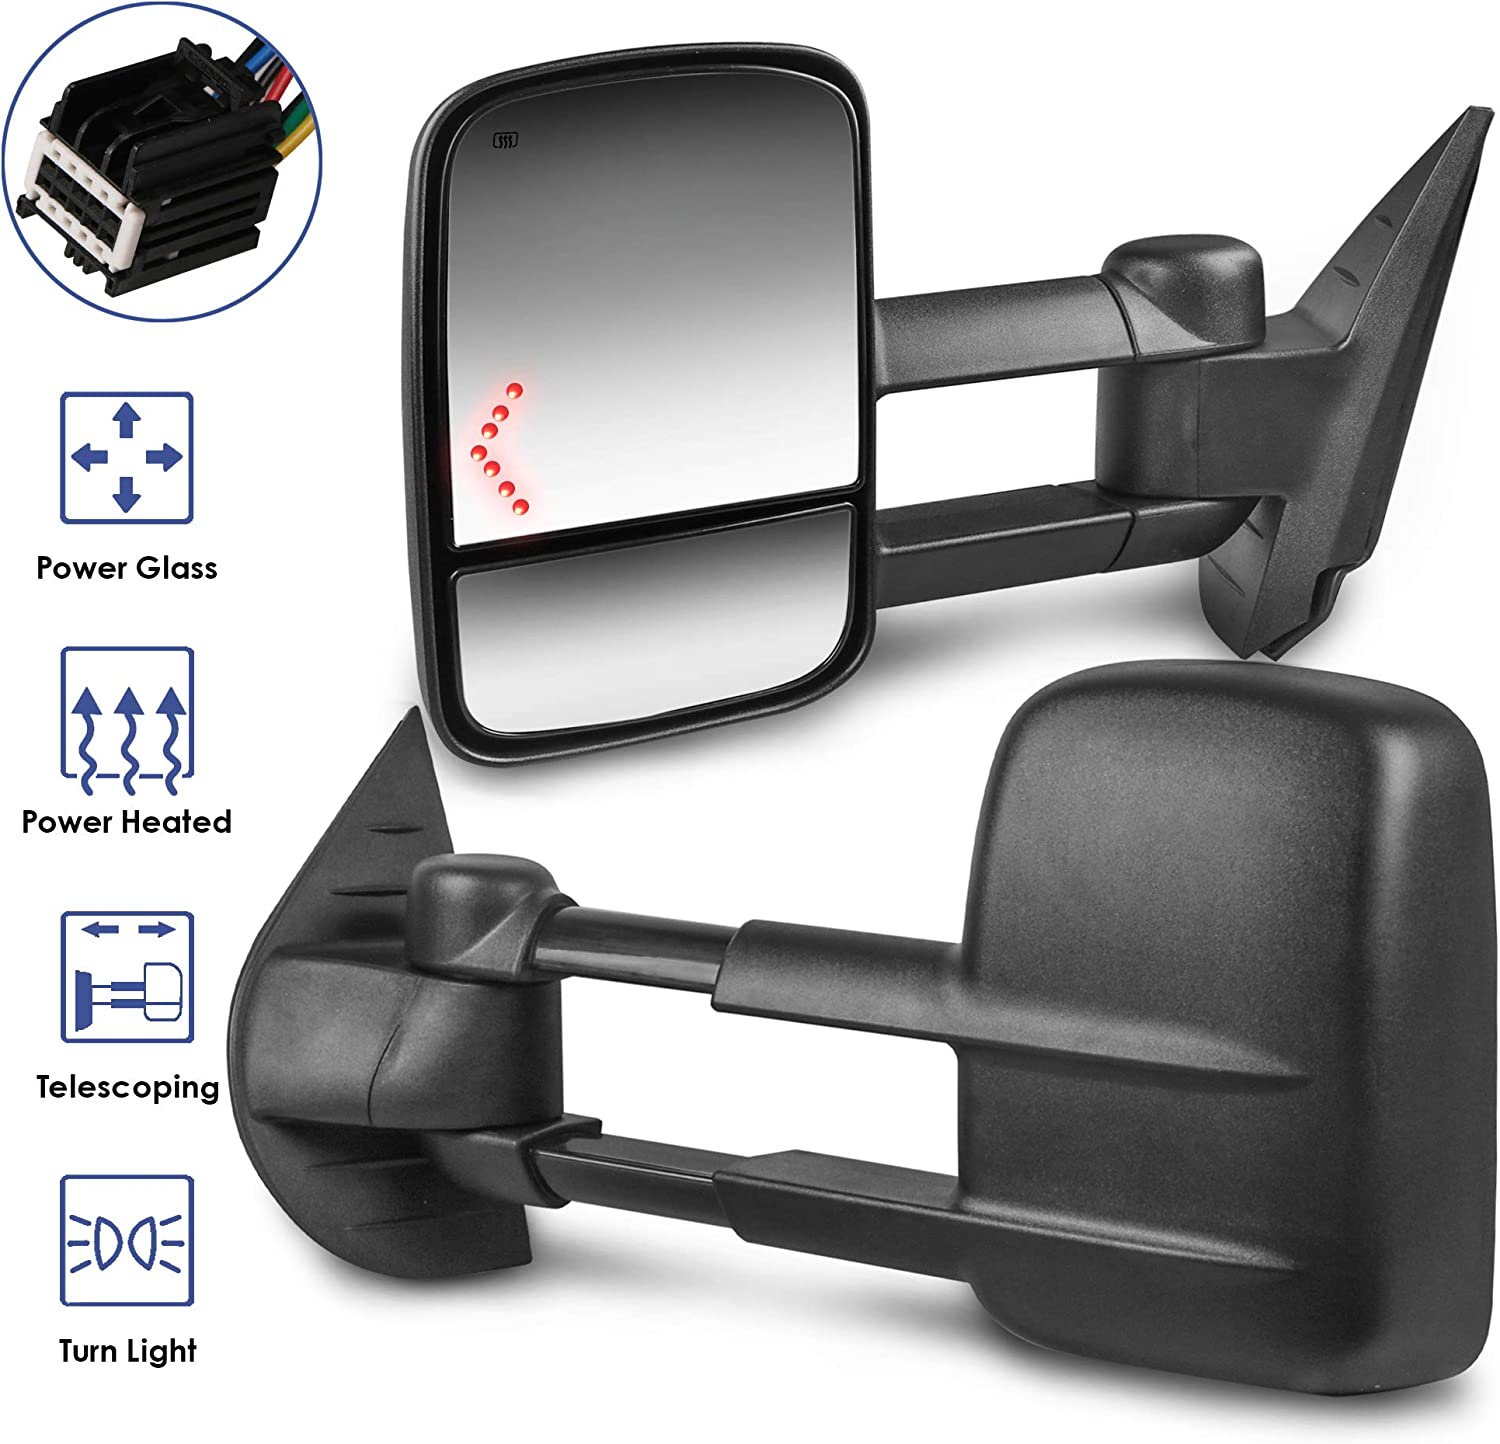 Set of 2 MOSTPLUS Power Heated Towing Mirrors Compatible for 2008-2013 Chevy Silverado Suburban Tahoe GMC Serria Yukon with Arrow Signal Light